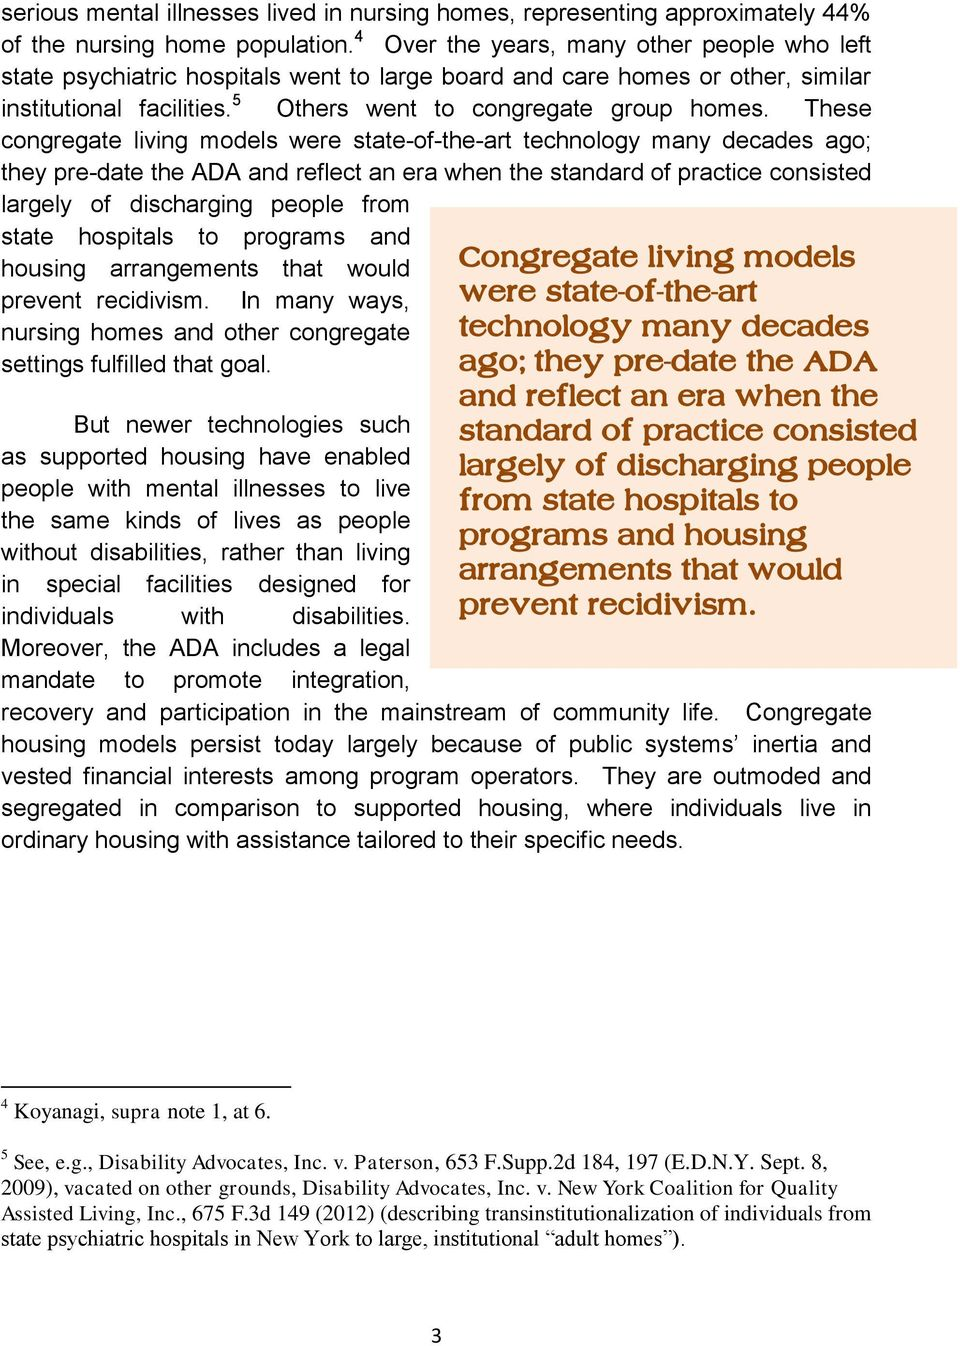 These congregate living models were state-of-the-art technology many decades ago; they pre-date the ADA and reflect an era when the standard of practice consisted largely of discharging people from